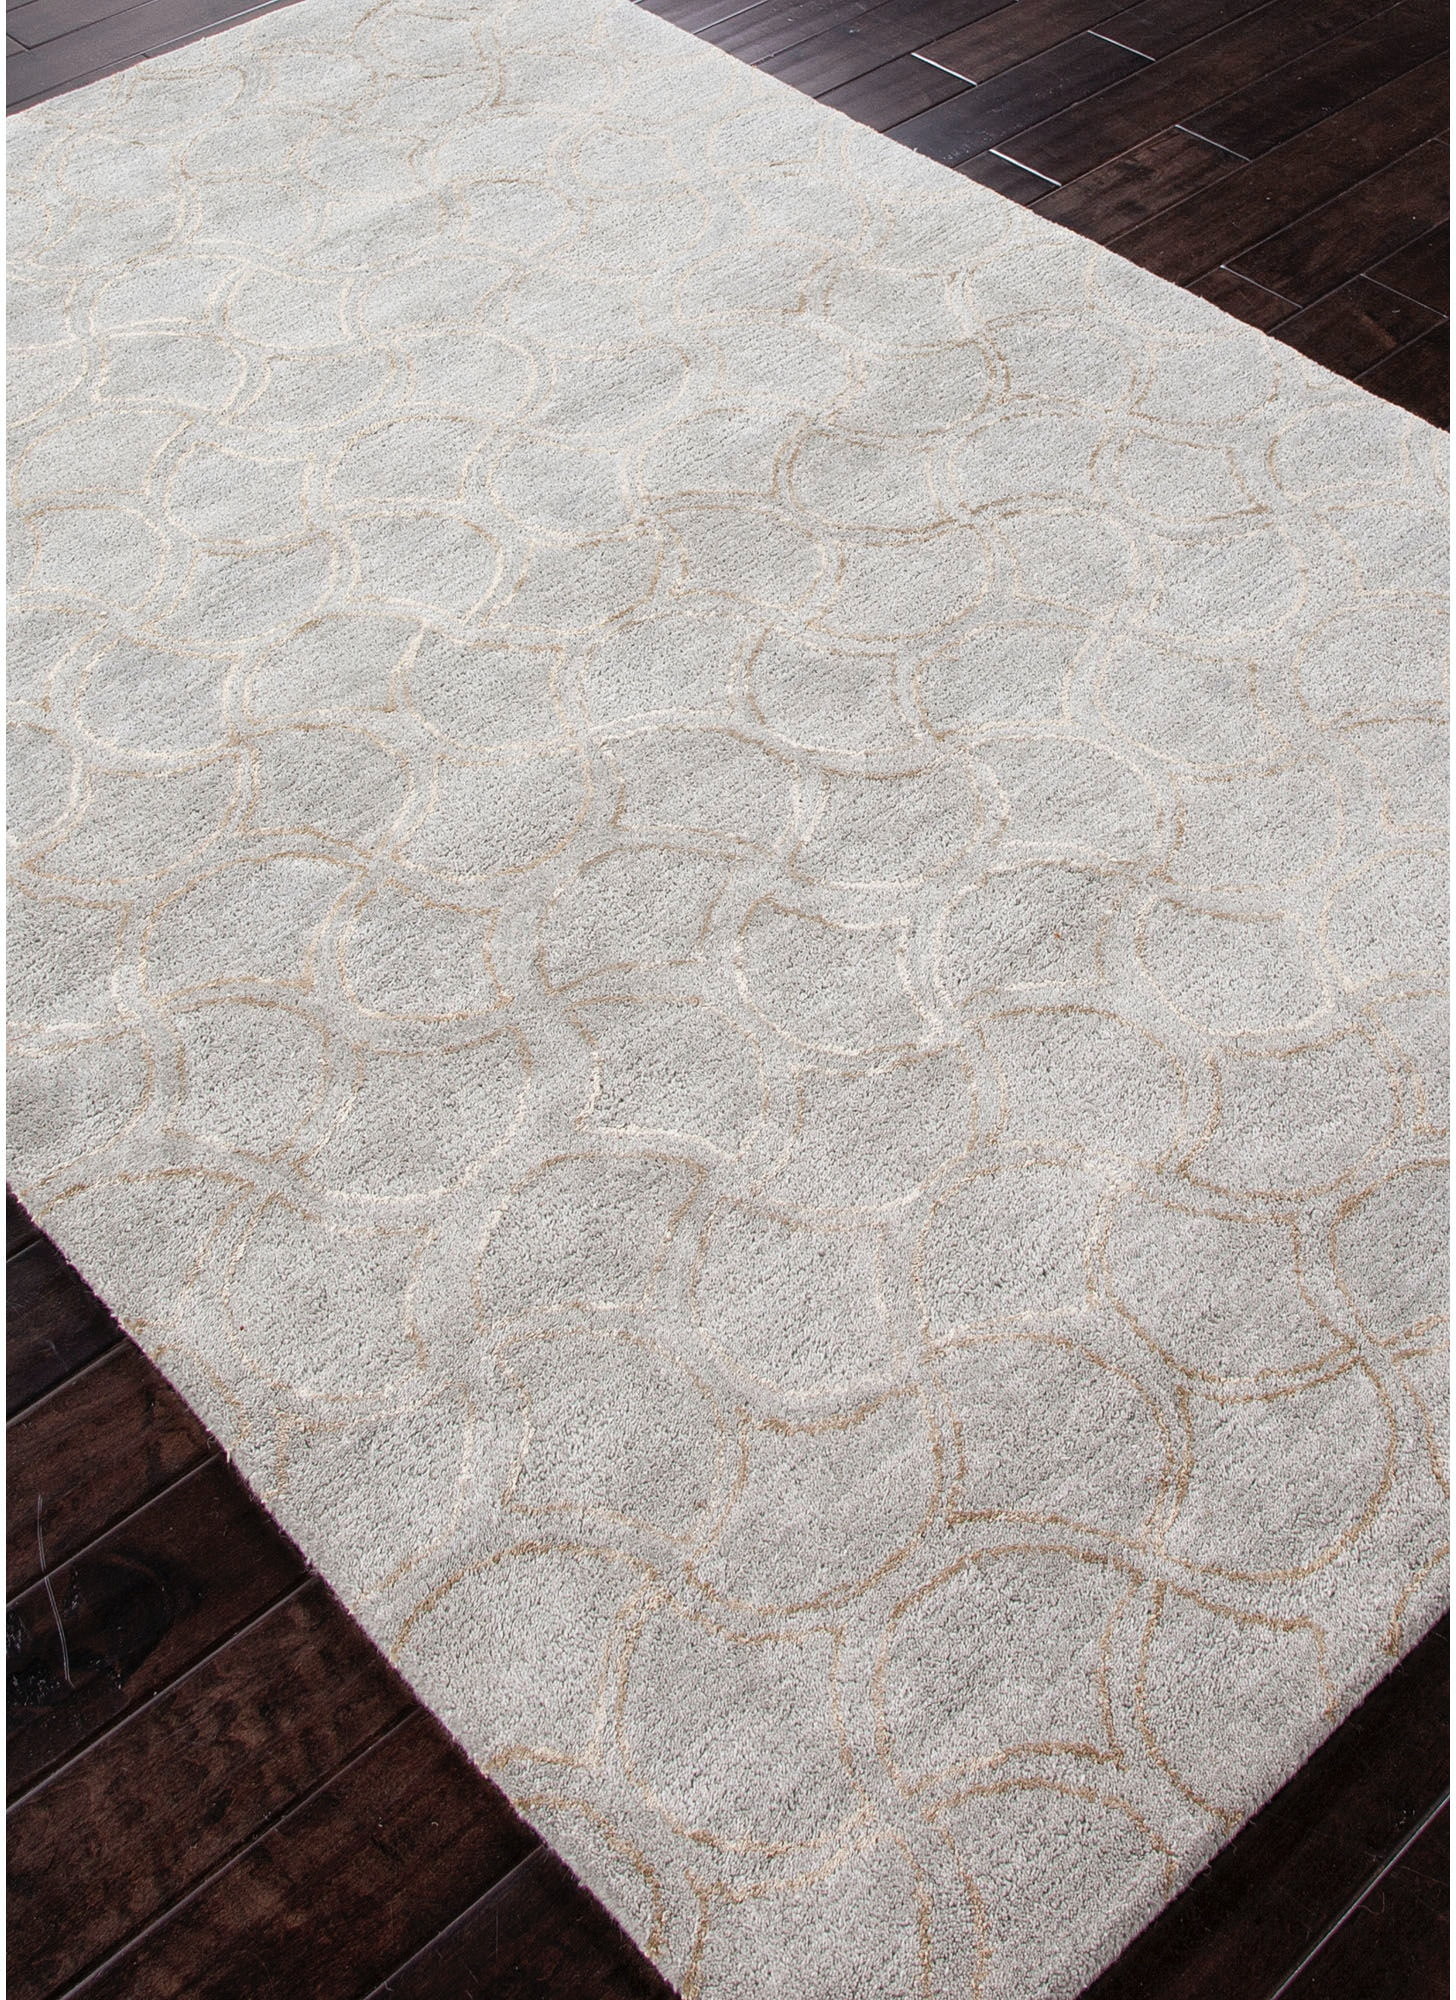 Jaipur Rugs Floor Coverings Hand Tufted Tone On Tone Pattern Wool